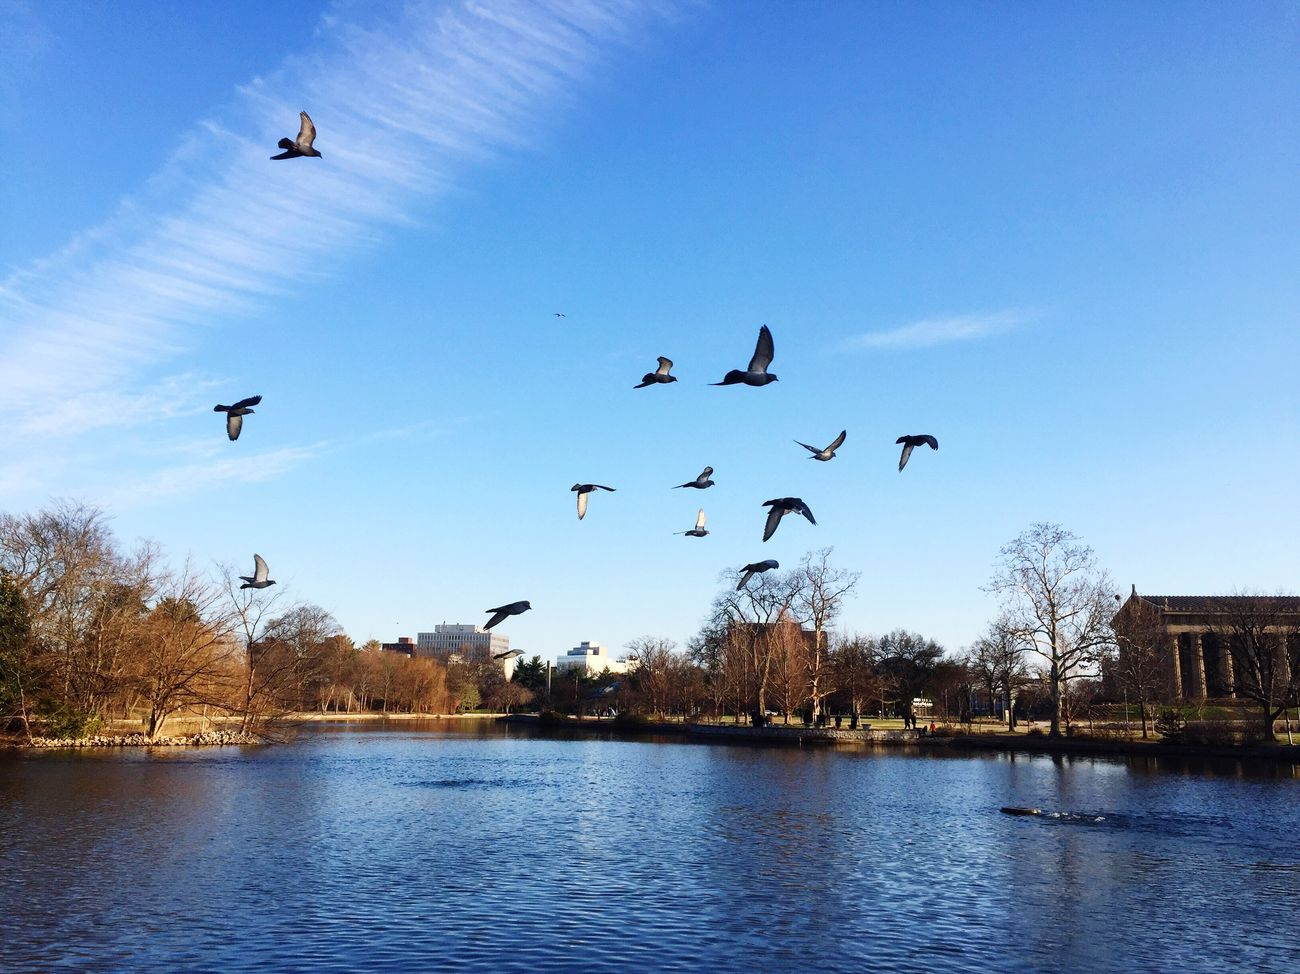 Flying Bird Waterfront No People Clear Sky Outdoors Beauty In Nature Parthenon Centenial Park